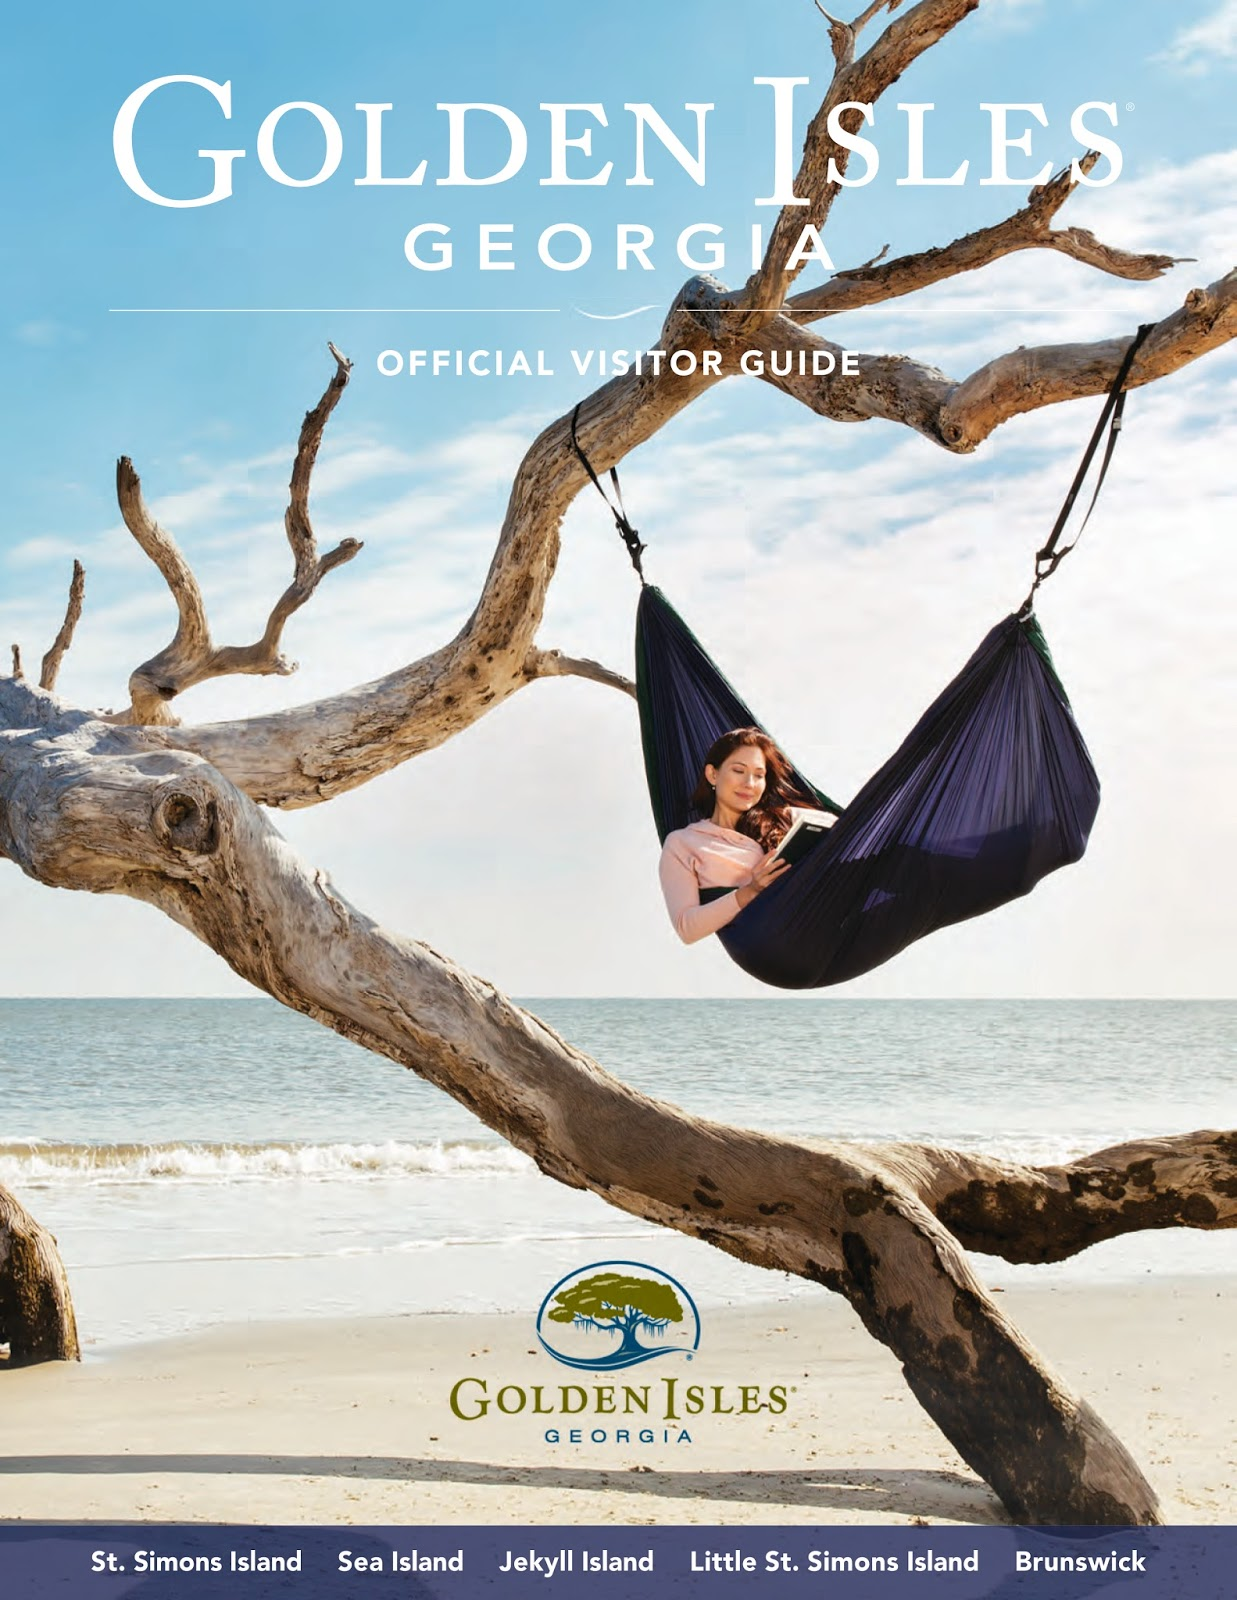 Amy West on the cover of the Golden Isles Visitors Guide.